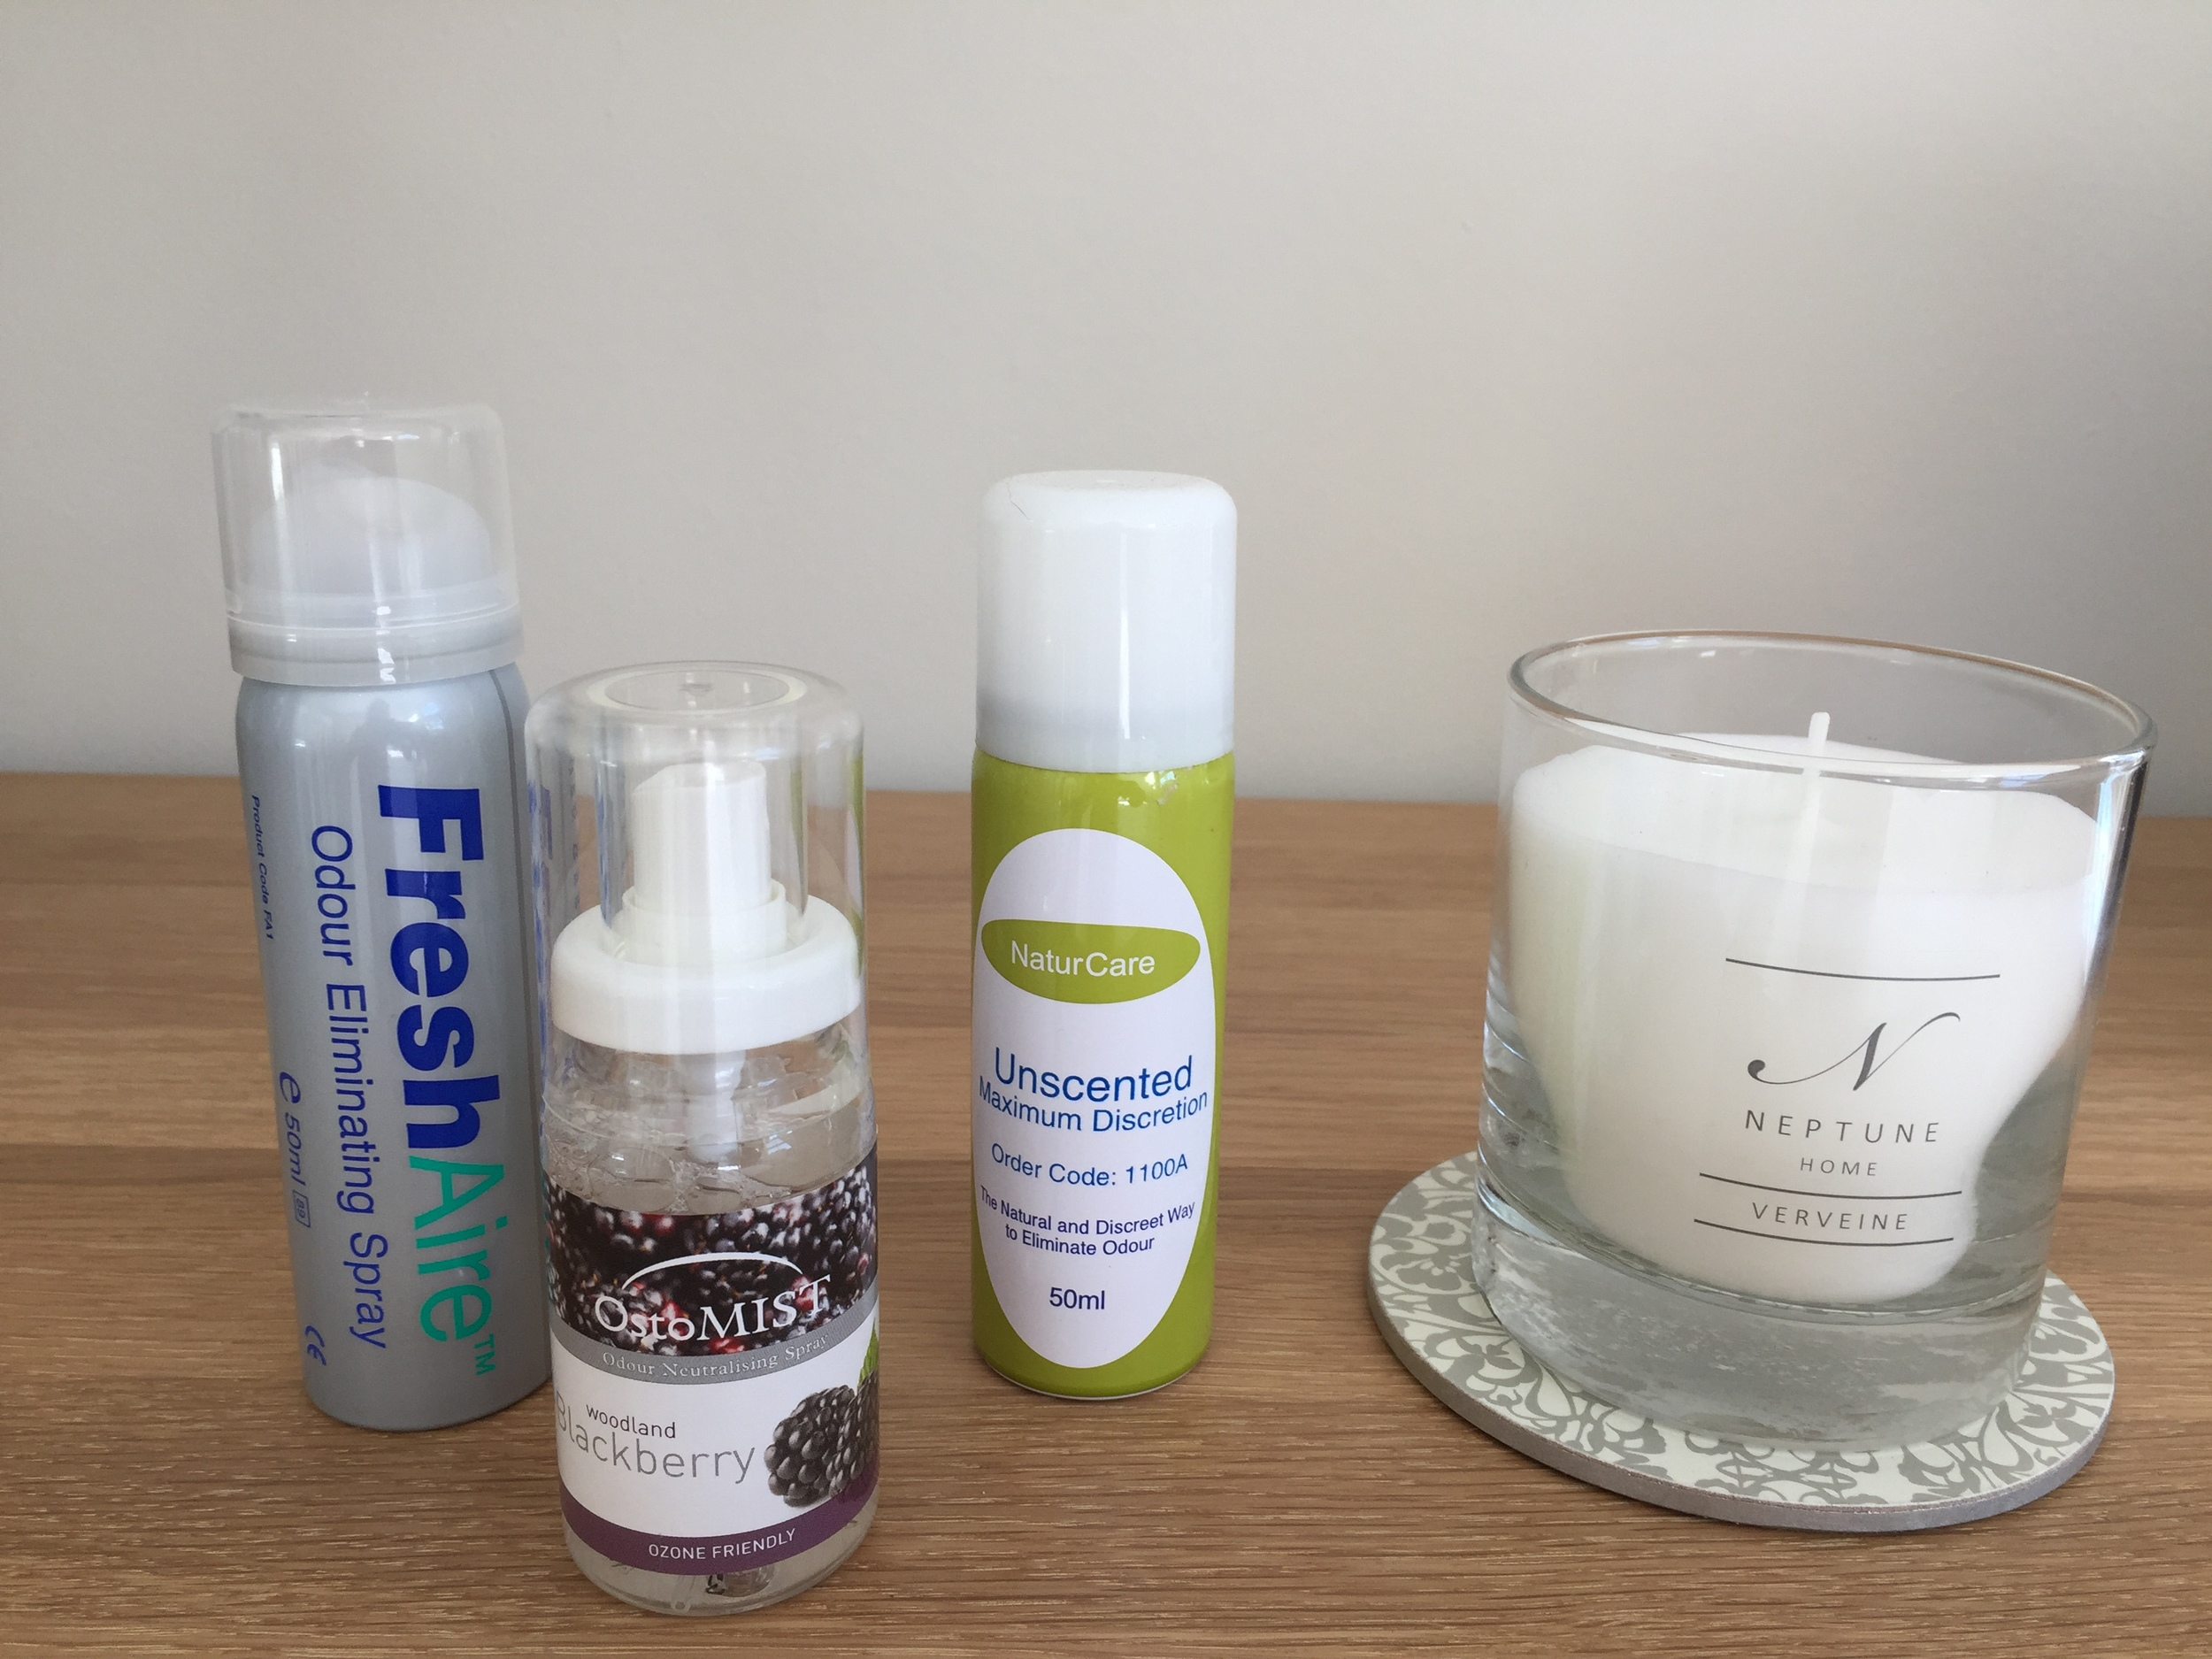 There are a variety of ostomy rooms sprays available, they work far far better than any normal retail air fresheners. I prefer the minty ones but I imagine that is very much down to personal choice.  Your ostomy provider should be able to supply various room sprays, Candle from Neptune.com